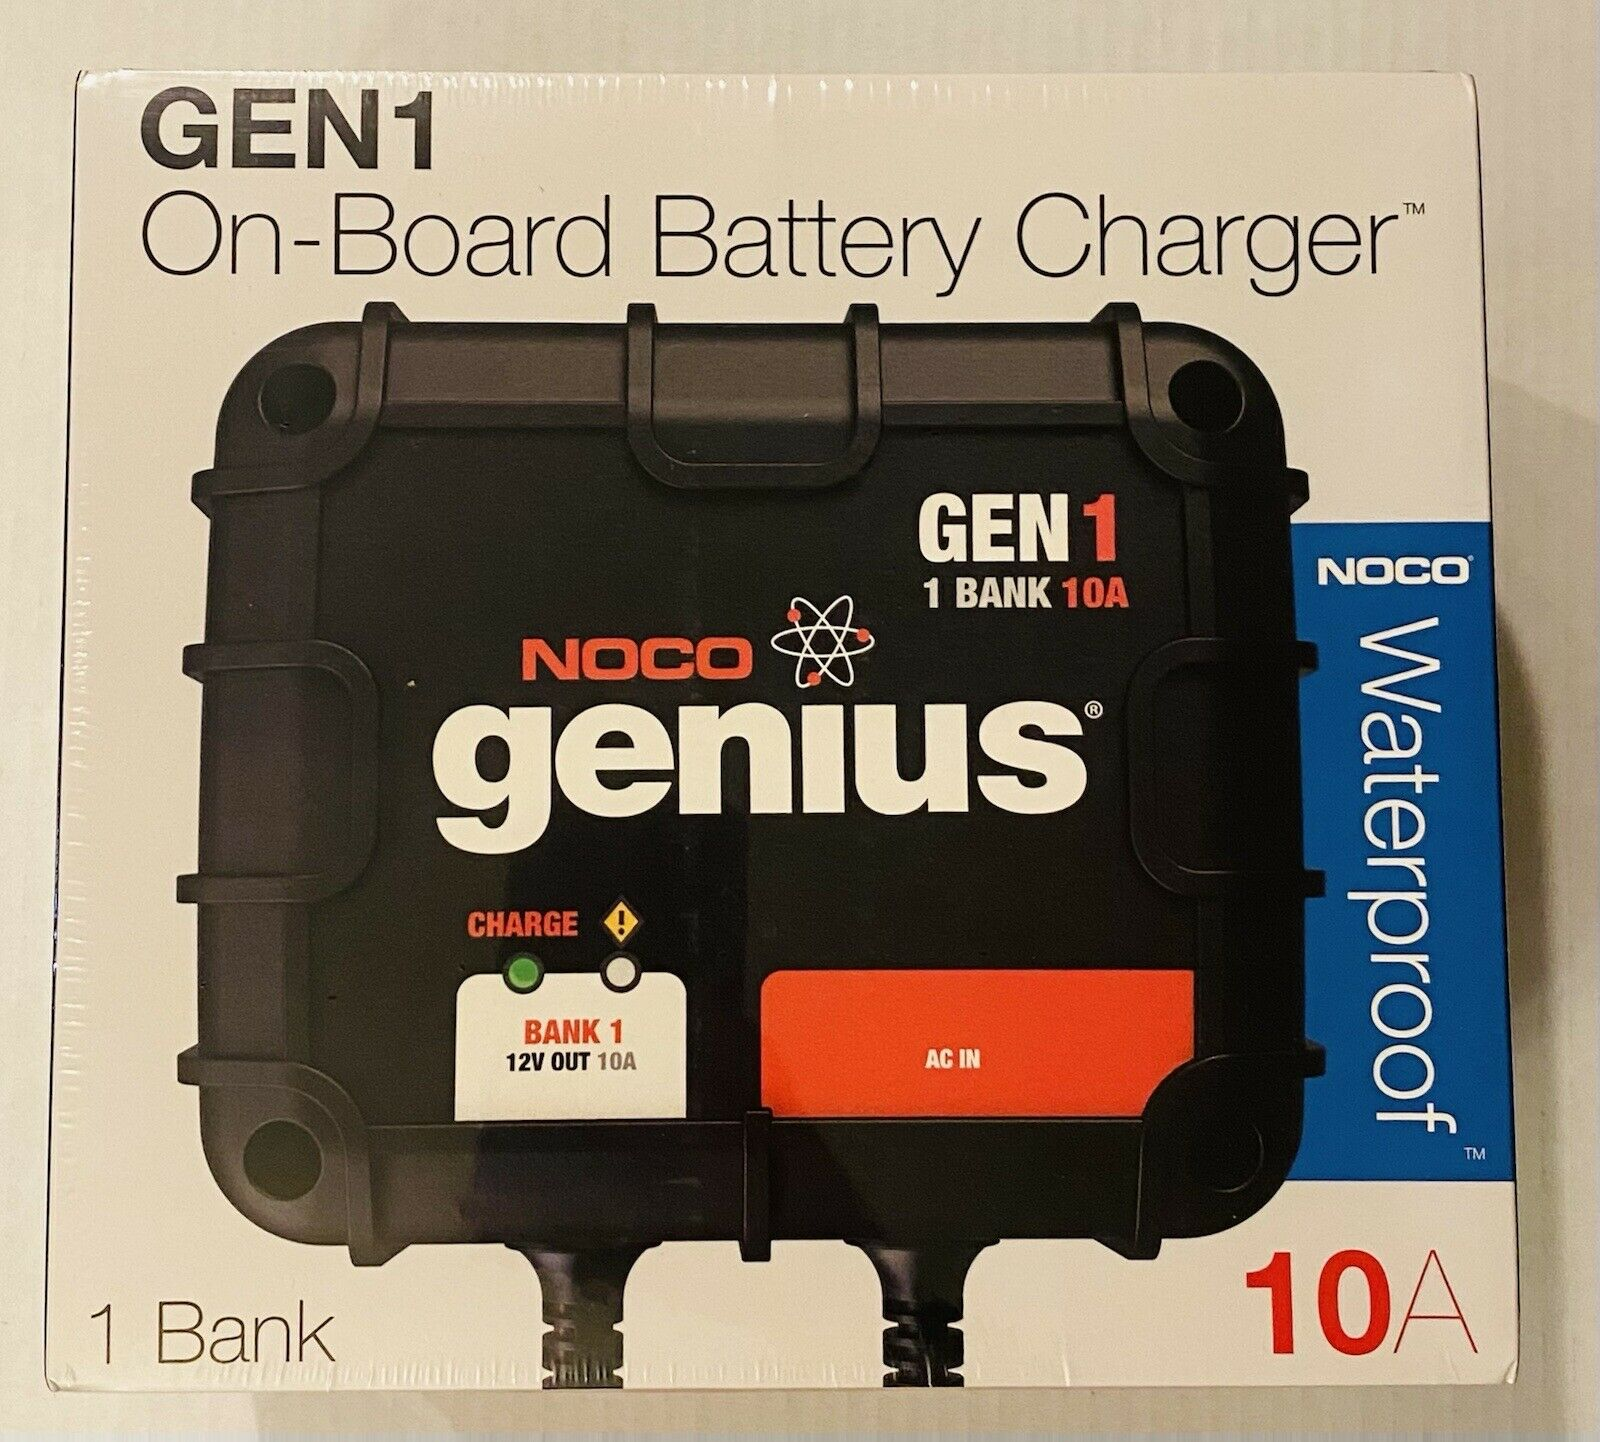 10Amp 1-Bank Onboard Battery Charger